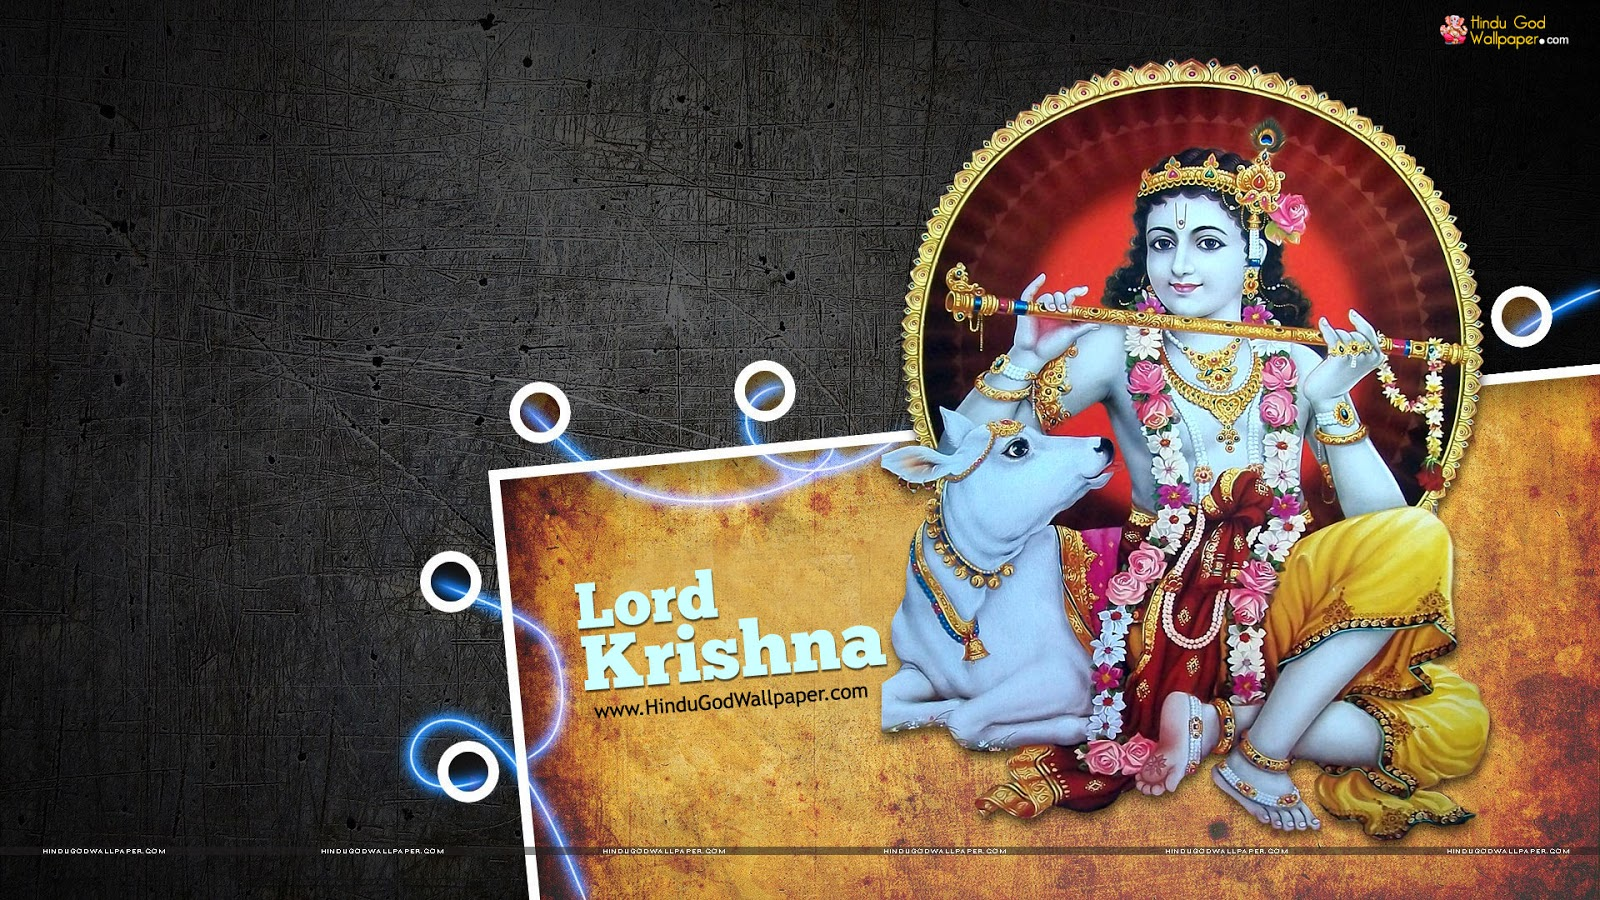 God Wallpaper Images Photos Pictures Download - Top 20 krishna ji images wallpapers pictures pics photos latest collection hd wallpapers